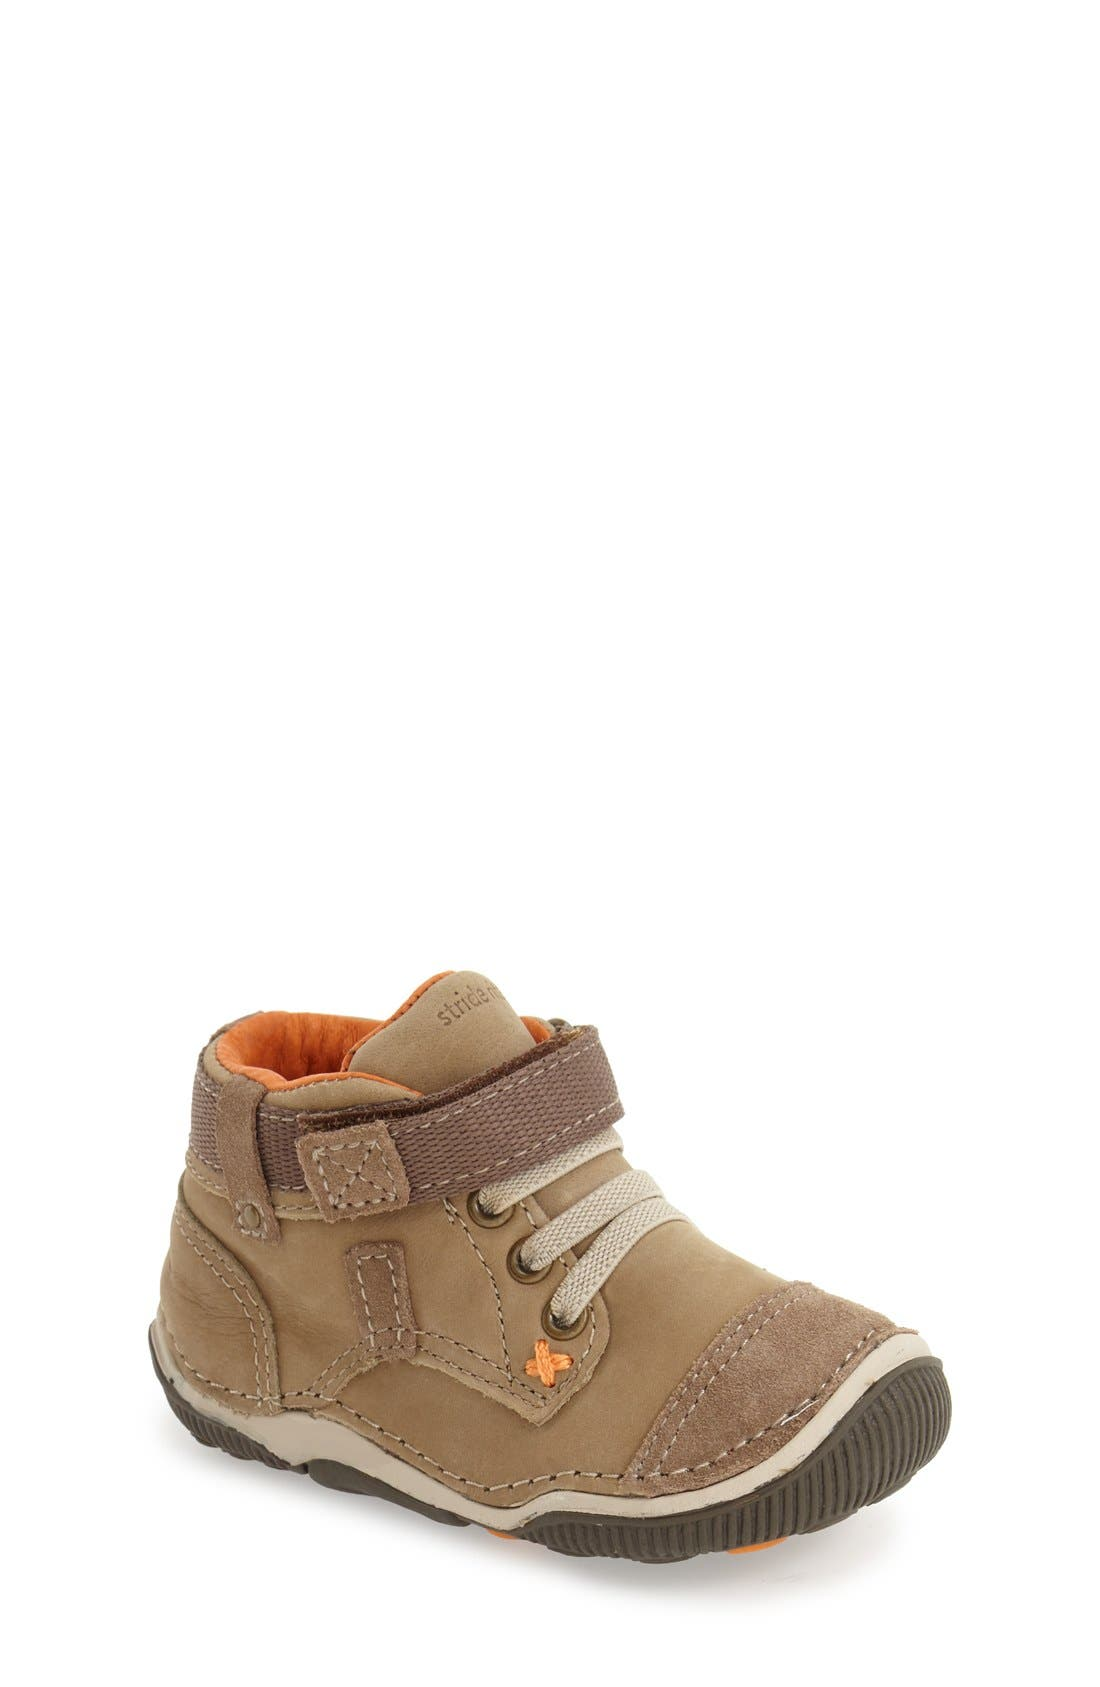 'Garrett' High Top Bootie Sneaker,                             Main thumbnail 1, color,                             Brown